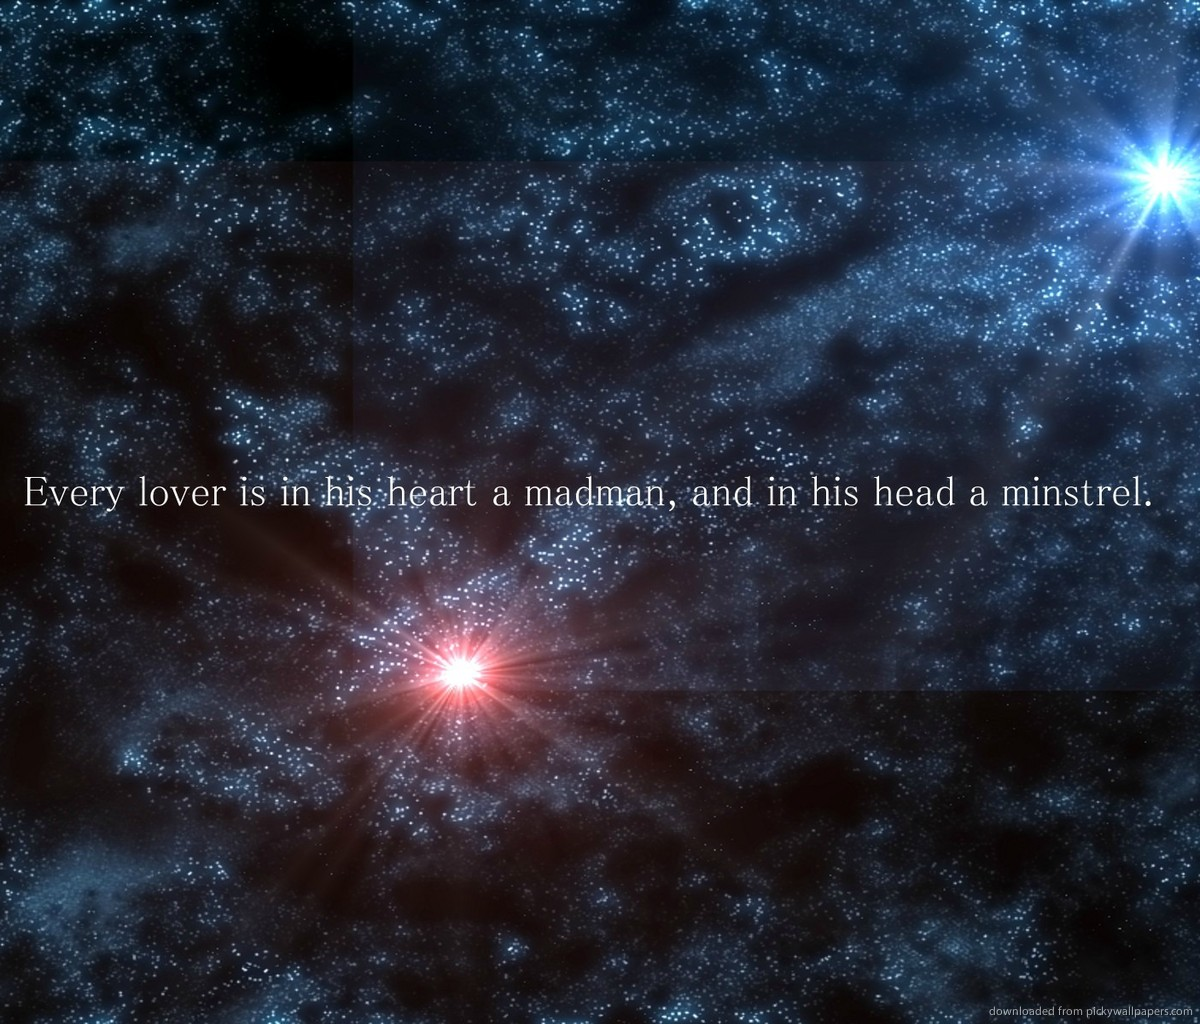 Galaxy Background Wallpaper With Quotes QuotesGram 1200x1024